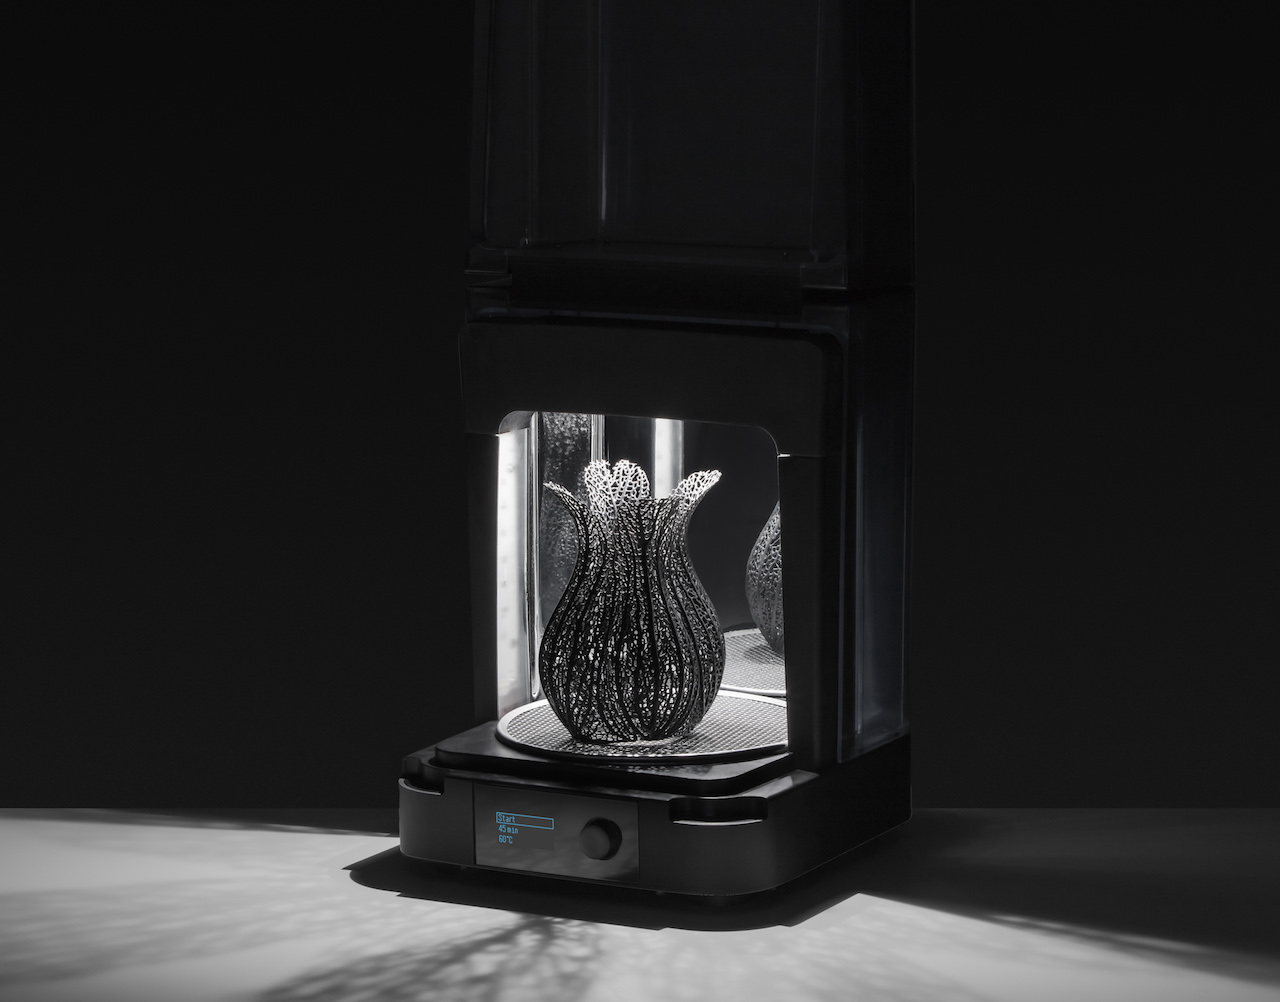 The new Formlabs Form Cure, shown curing a Nervous System 3D design